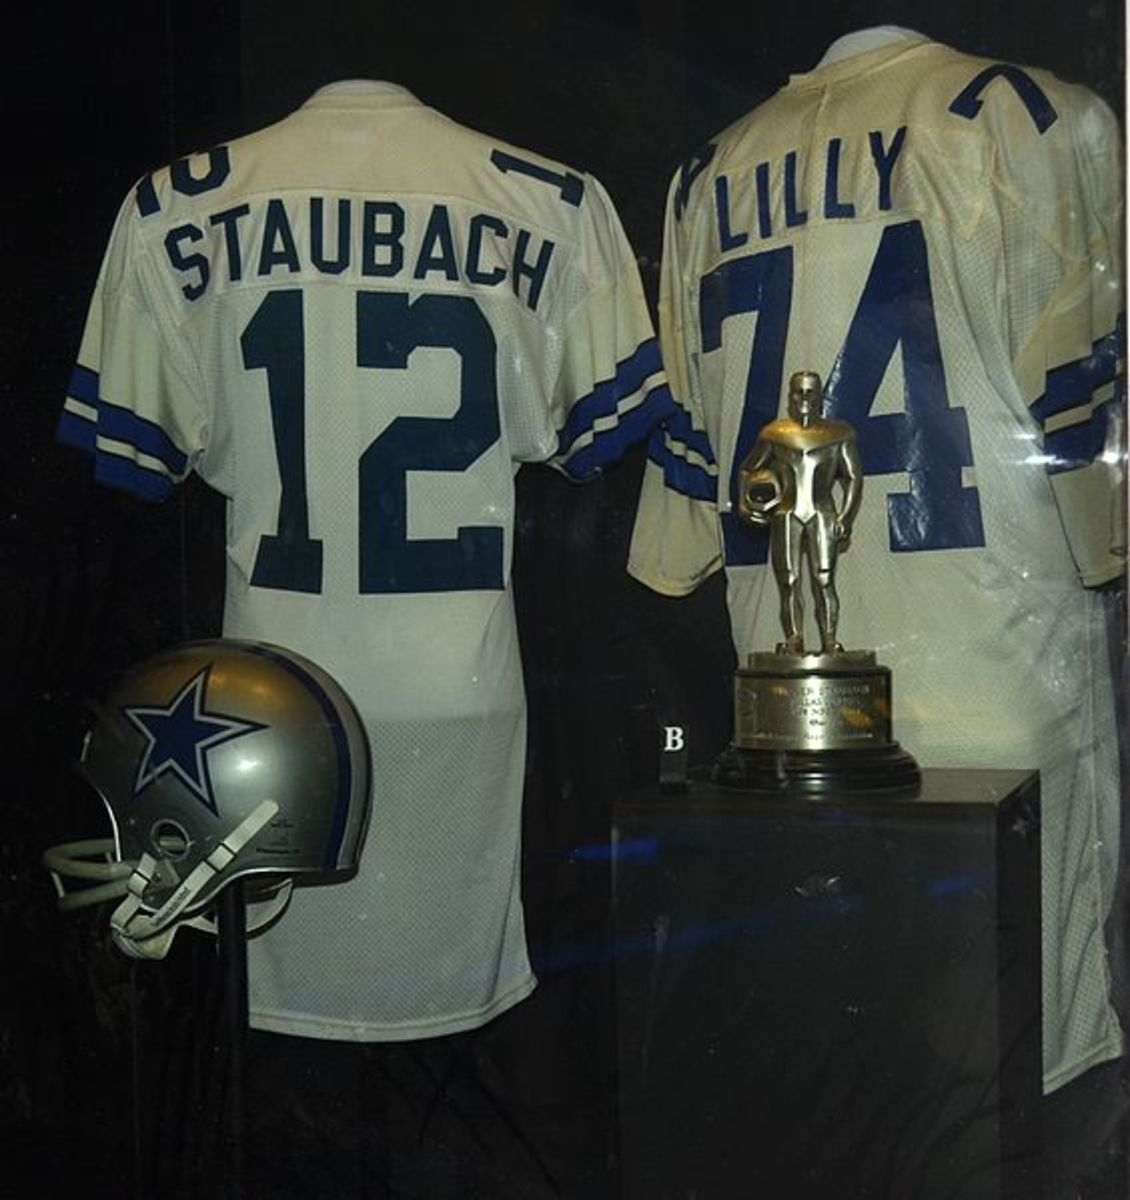 Jerseys of Cowboys Roger Staubach and Bob Lilly at the NFL Hall of Fame